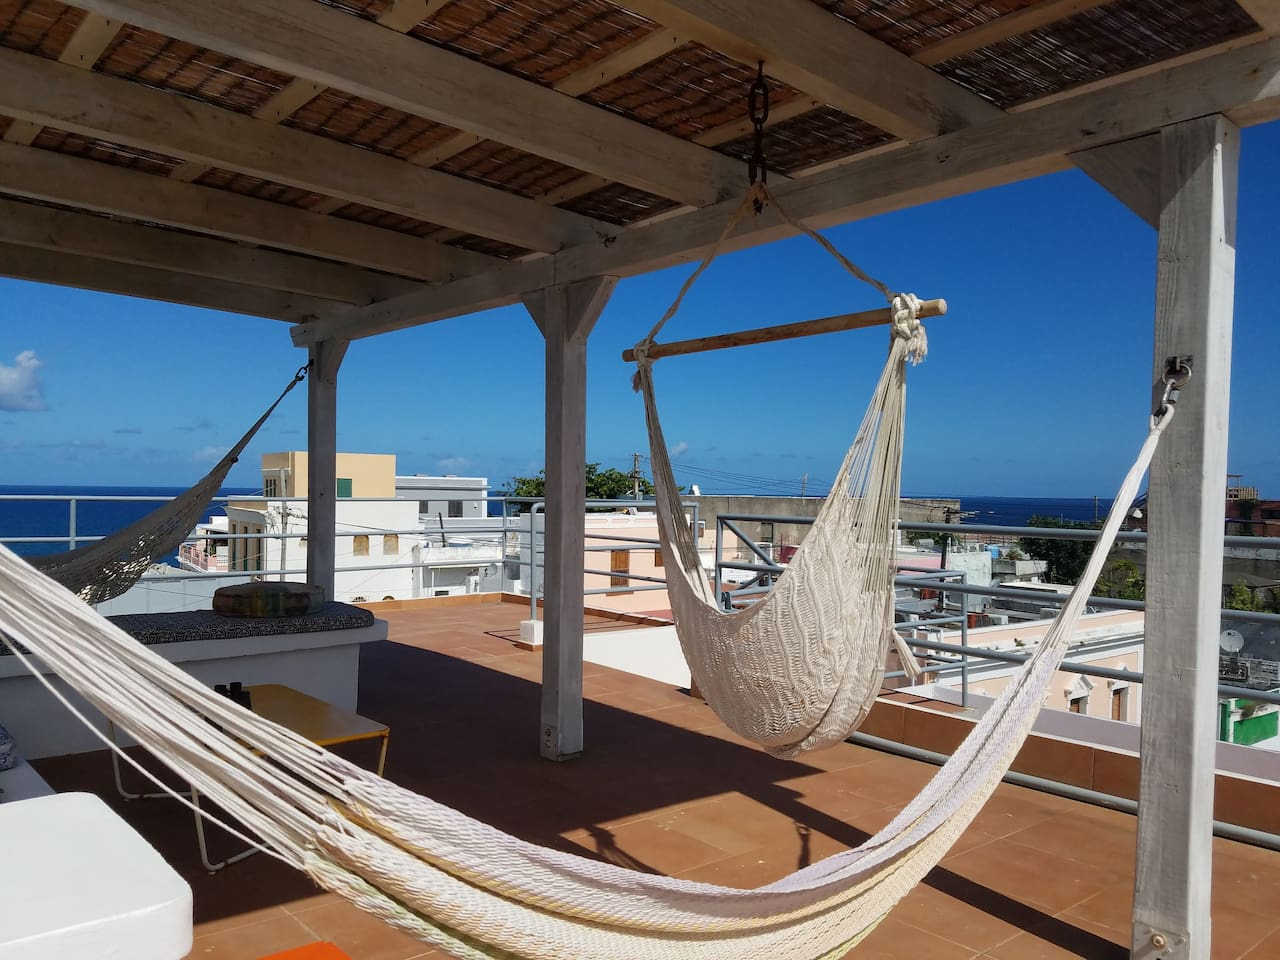 Hang out on our rooftop terrace -- also great for sleeping al fresco if you like. Two benches, two hammocks, and a hammock seat await you.